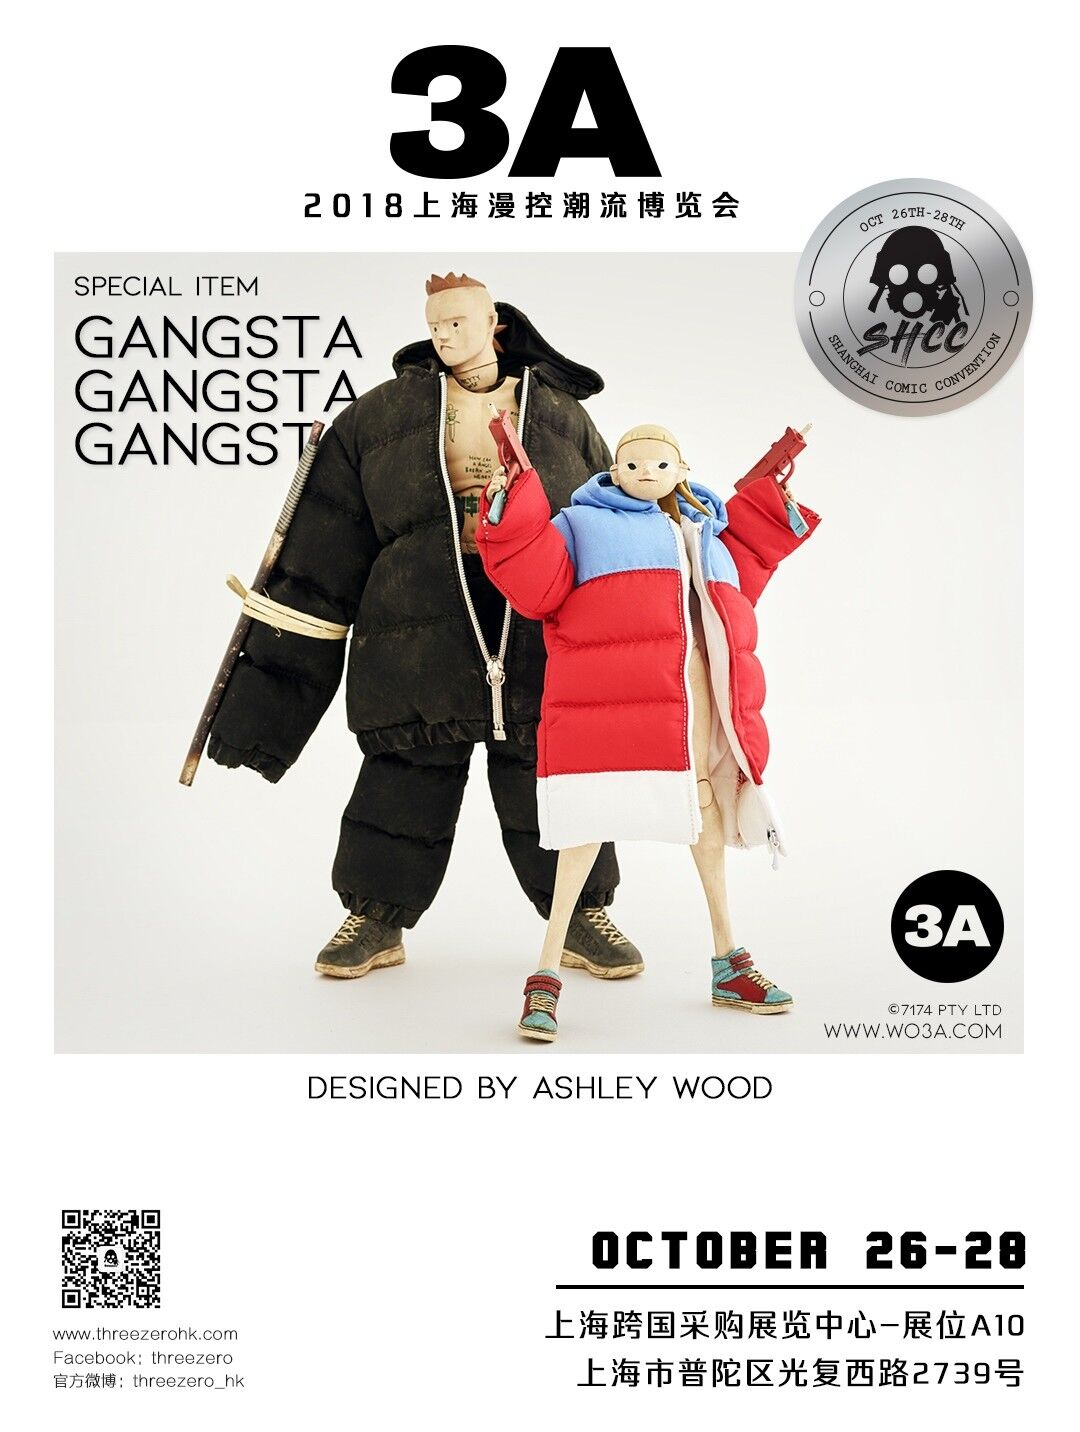 THREEA TOYS SHCC 2018 Ashley Wood Die Antwoord GANGSTA NINJI & LANDI 1/6 Figure